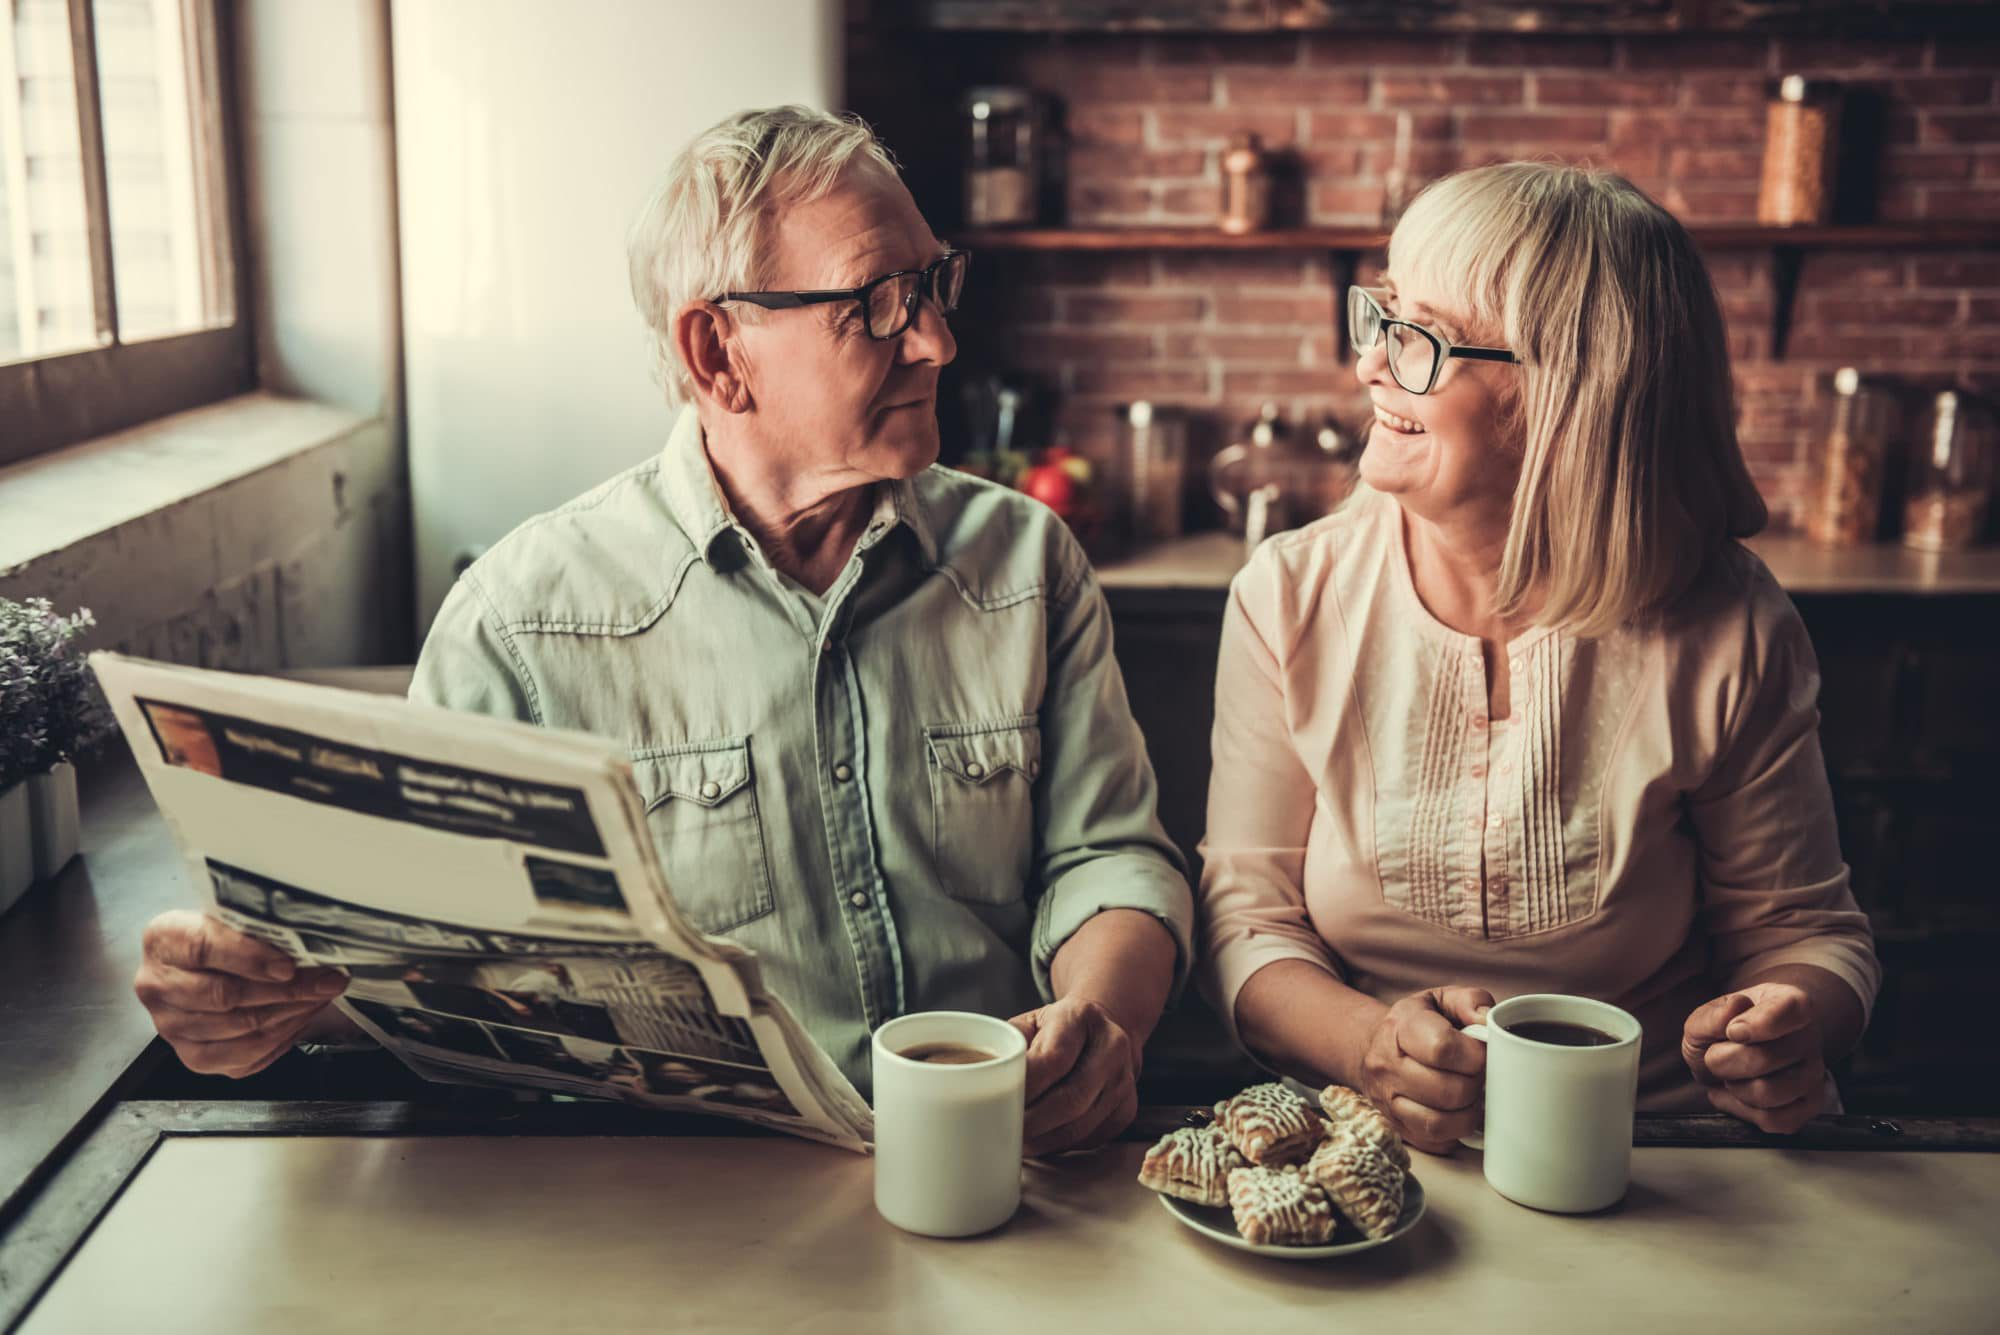 Home owners enjoying breakfast in their outdated kitchen reading their newspaper. Sierra Remodeling is in the news improving their community one home at a time!